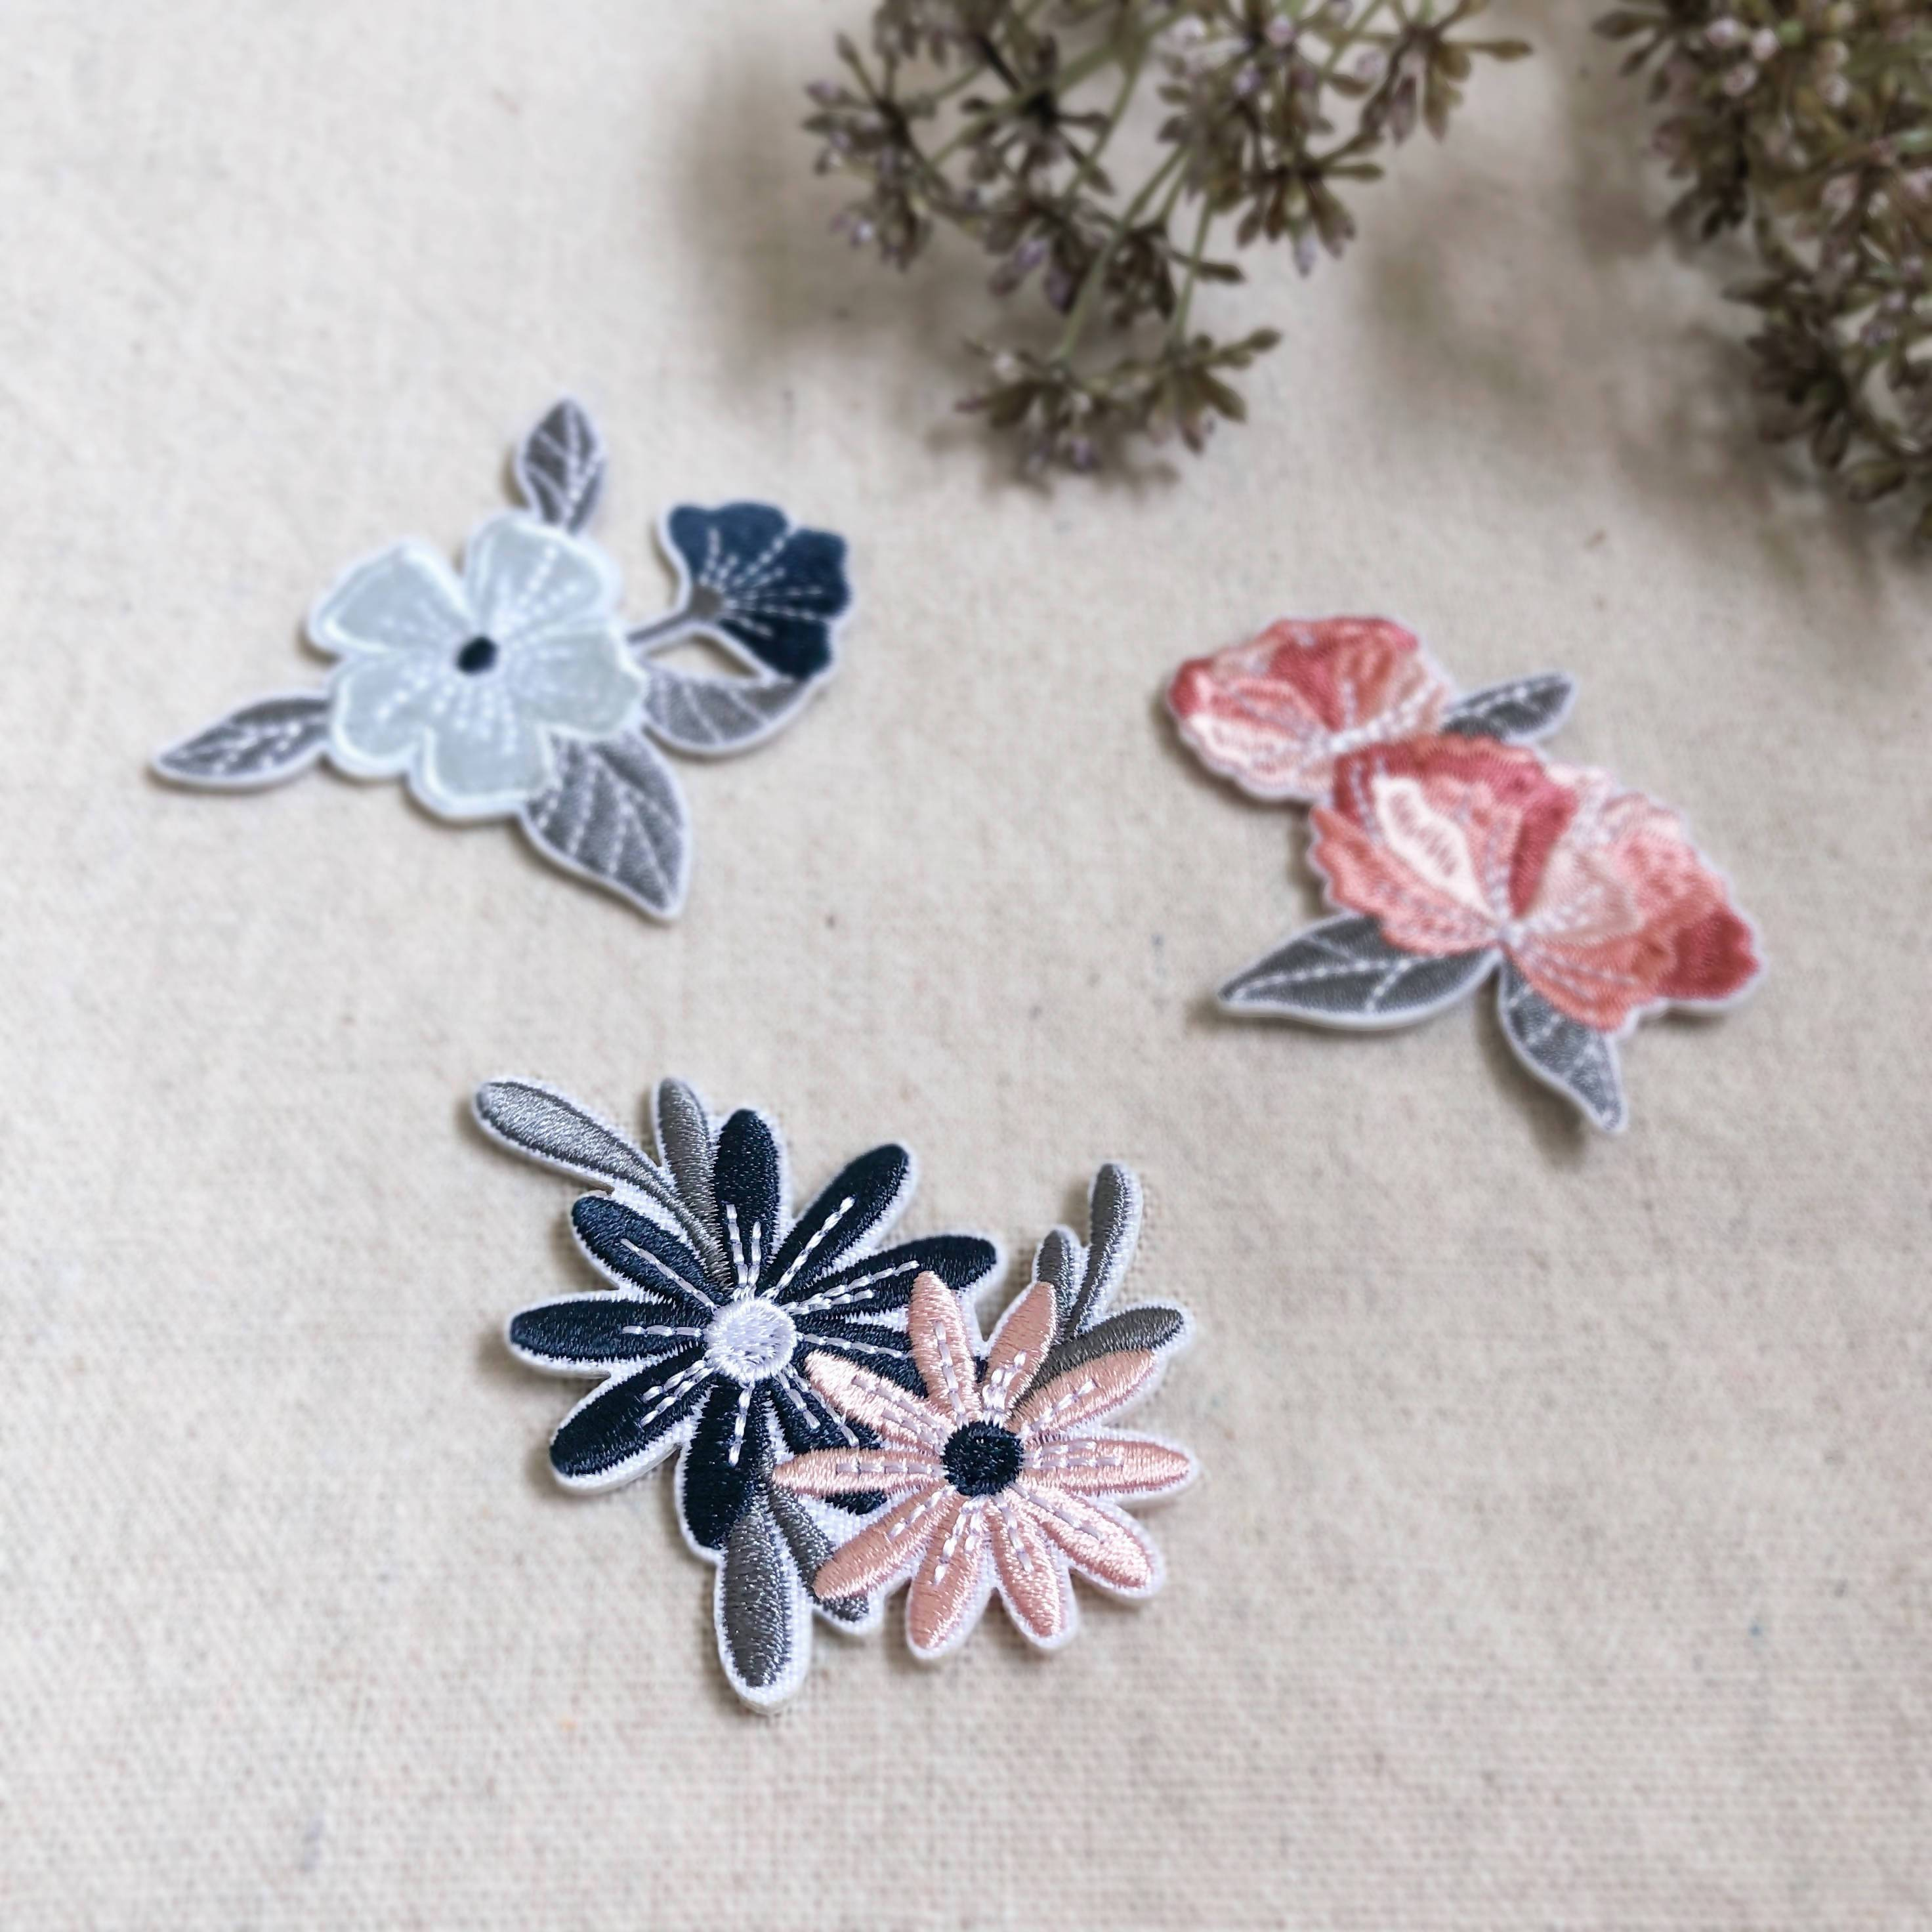 Garden Blooms | Floral Embroidery Iron-on Patch - Iron On Patches - Papercranes Design - Naiise